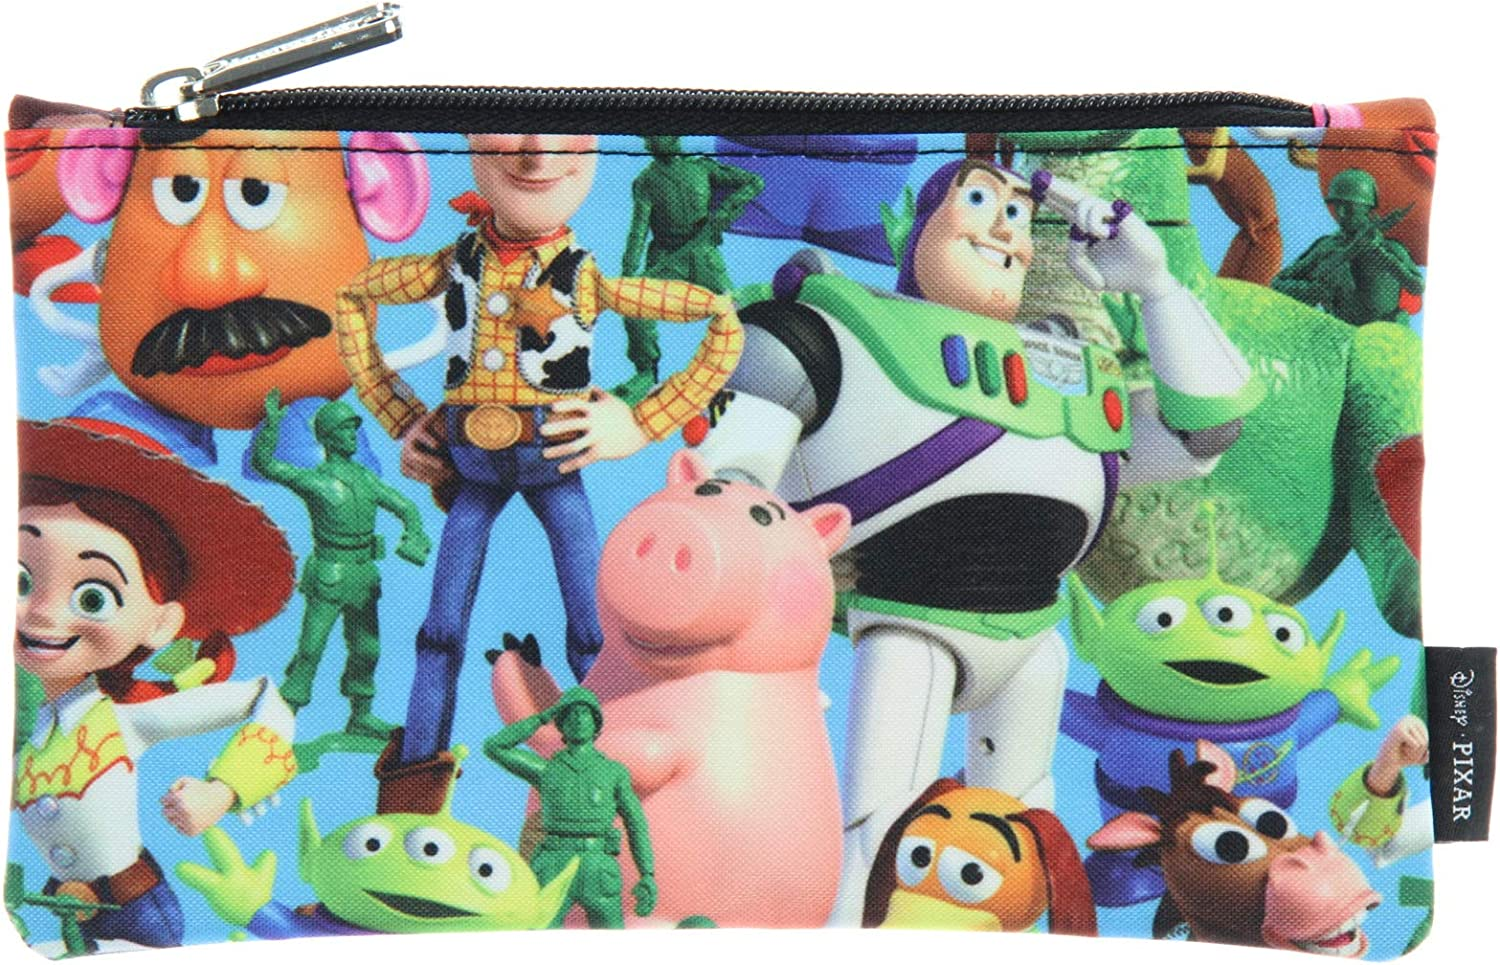 Loungefly x Disney Pixar Toy Story Allover Character Print Zip Around Wallet